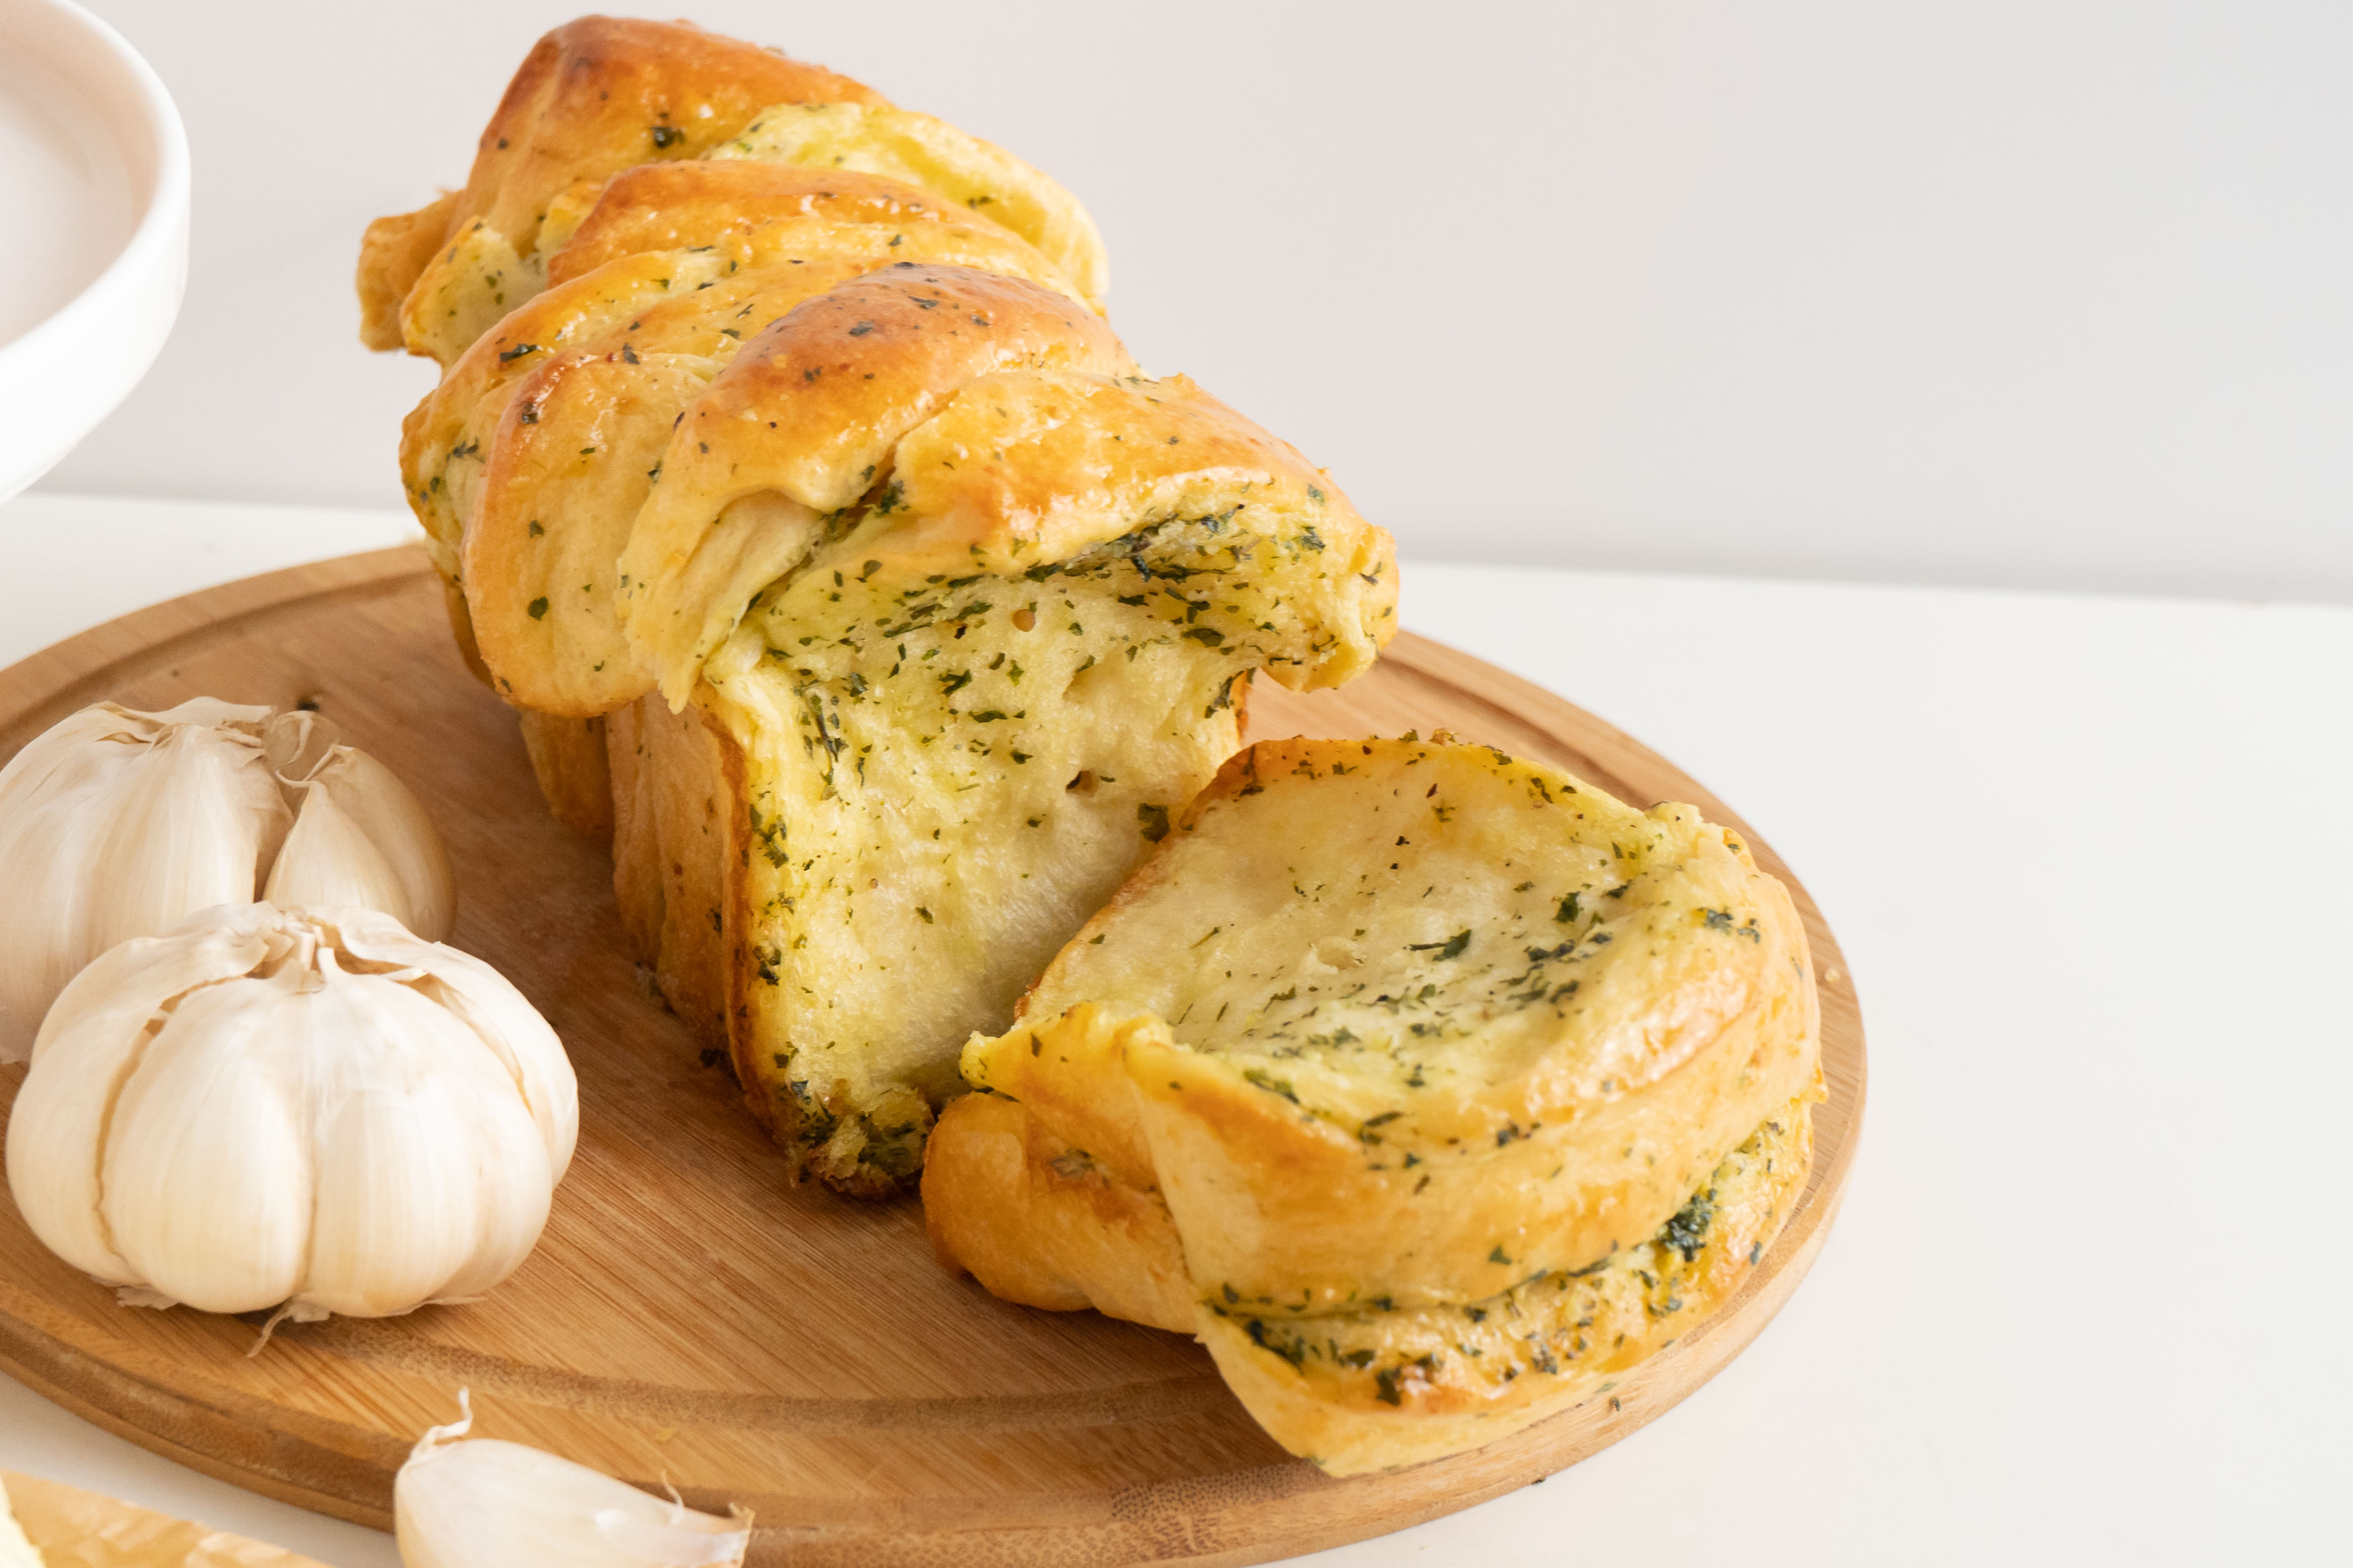 840x560-Garlic-Butter-Pull-Apart-Loaf